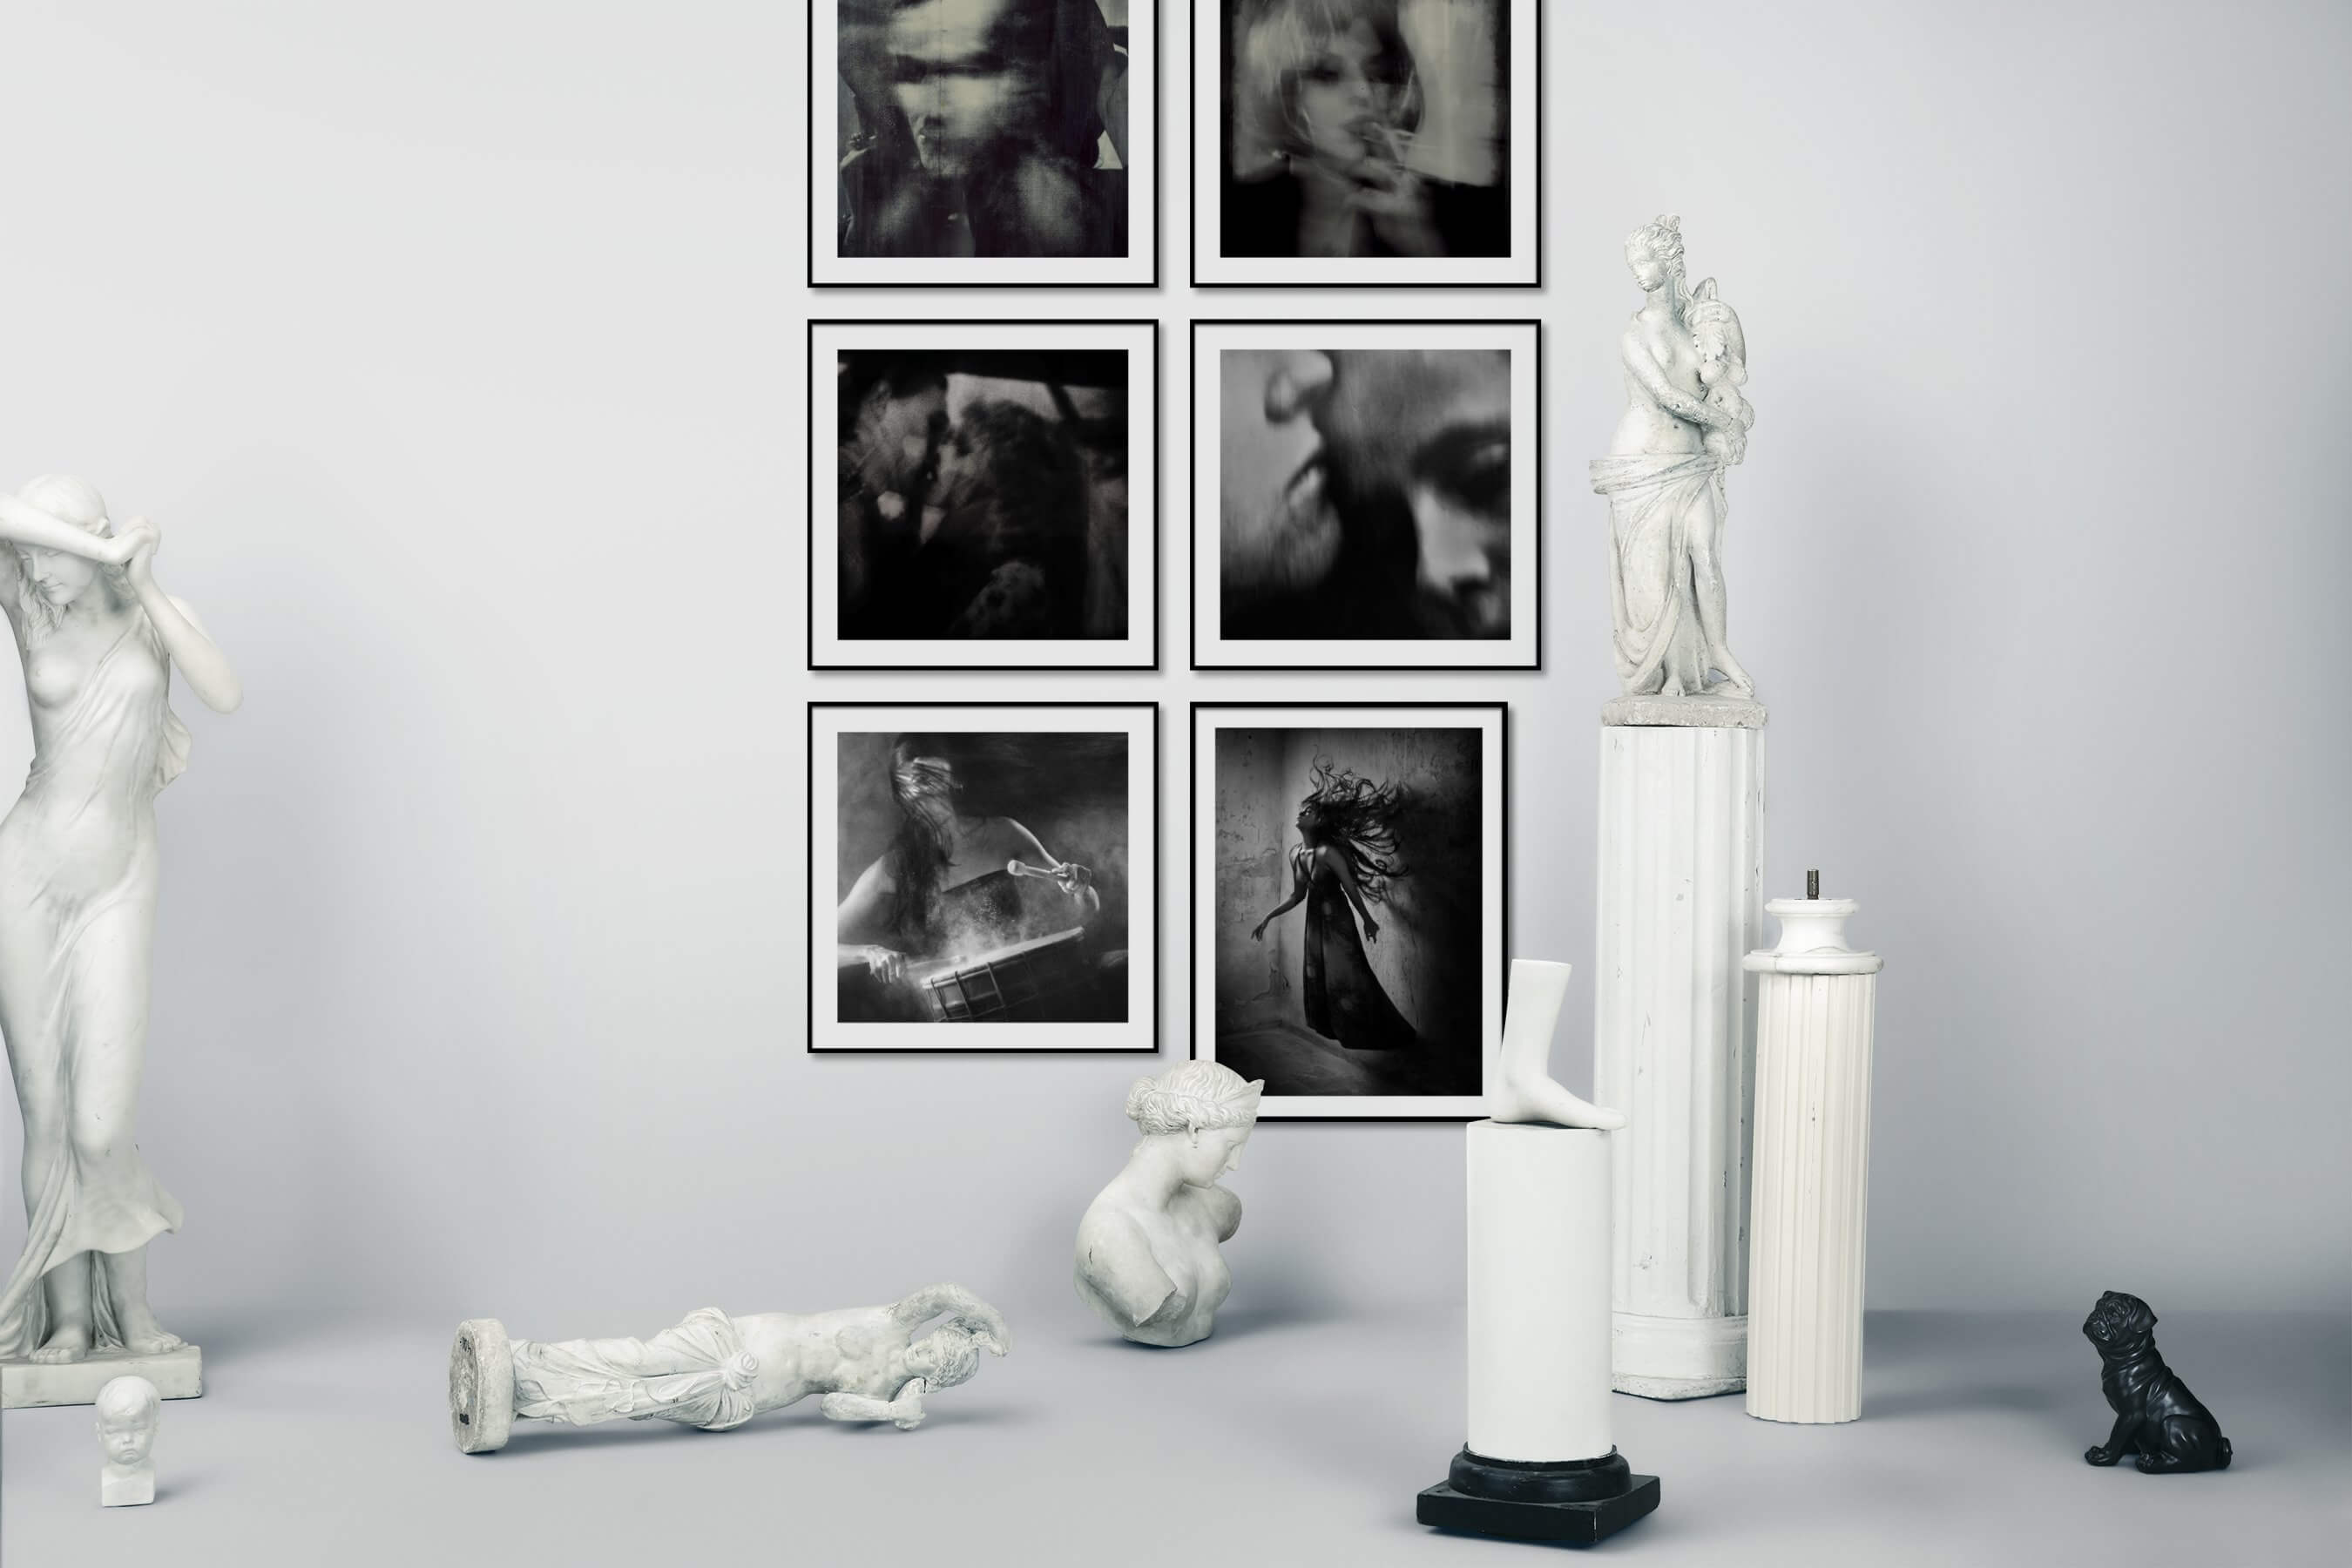 Gallery wall idea with six framed pictures arranged on a wall depicting Artsy, Black & White, Fashion & Beauty, and Vintage